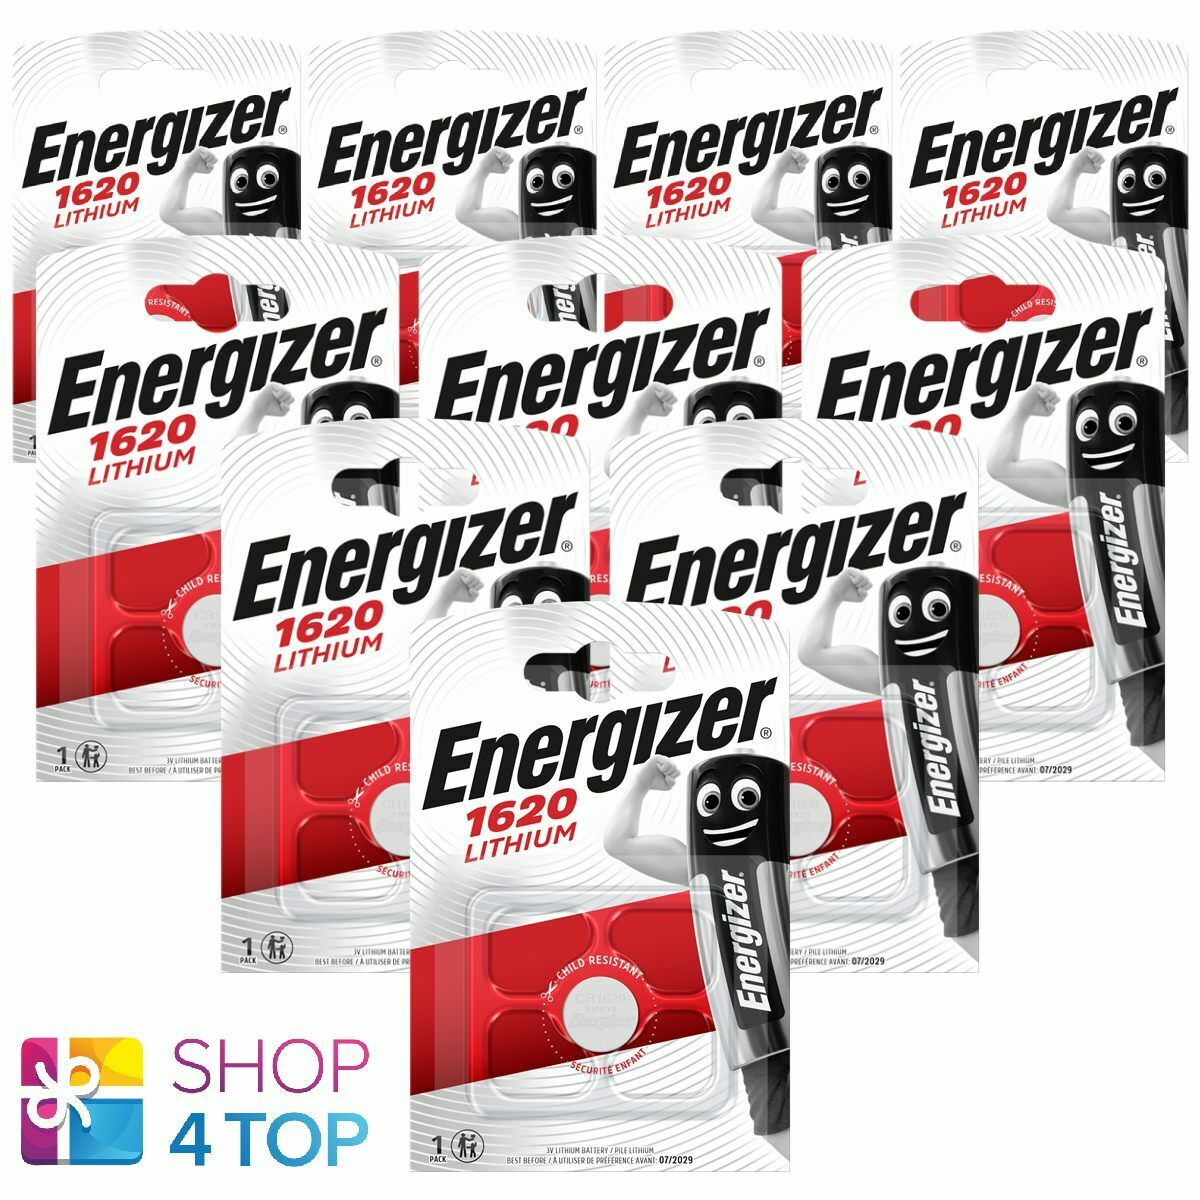 10 energizer cr1620 lithium button cell batteries 3v dl1620 exp 2029 new